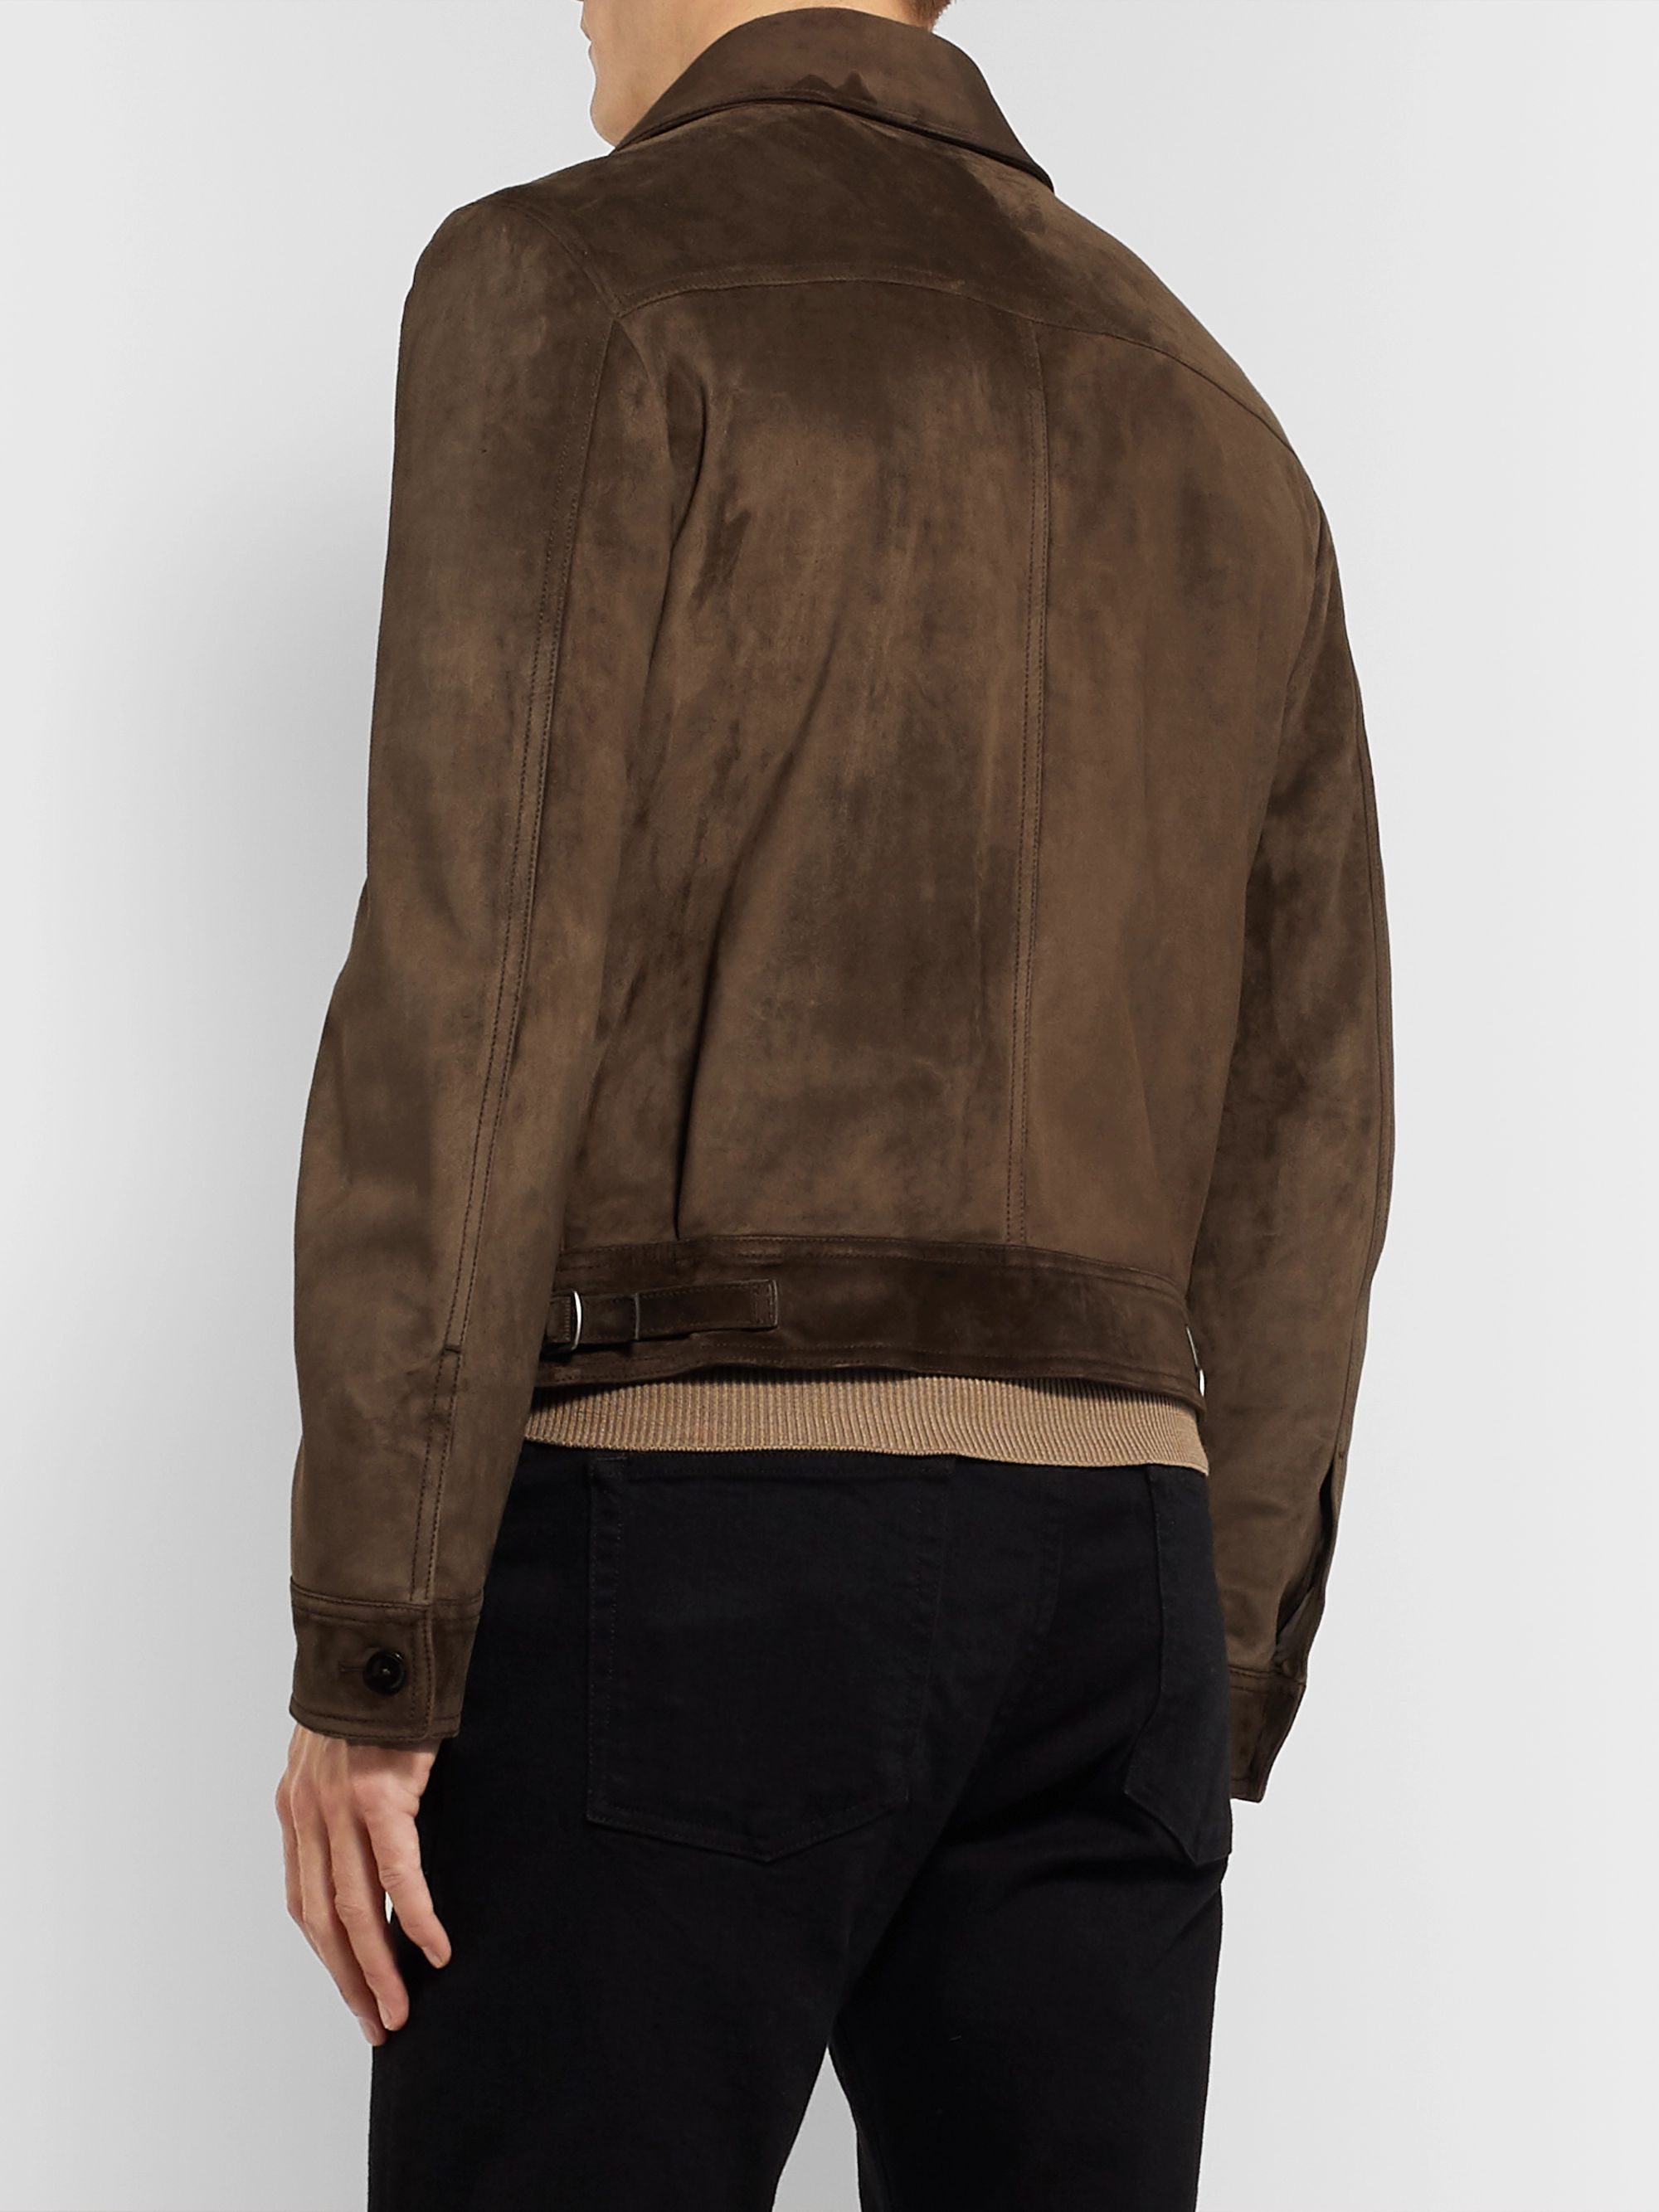 TOM FORD Suede Blouson Jacket